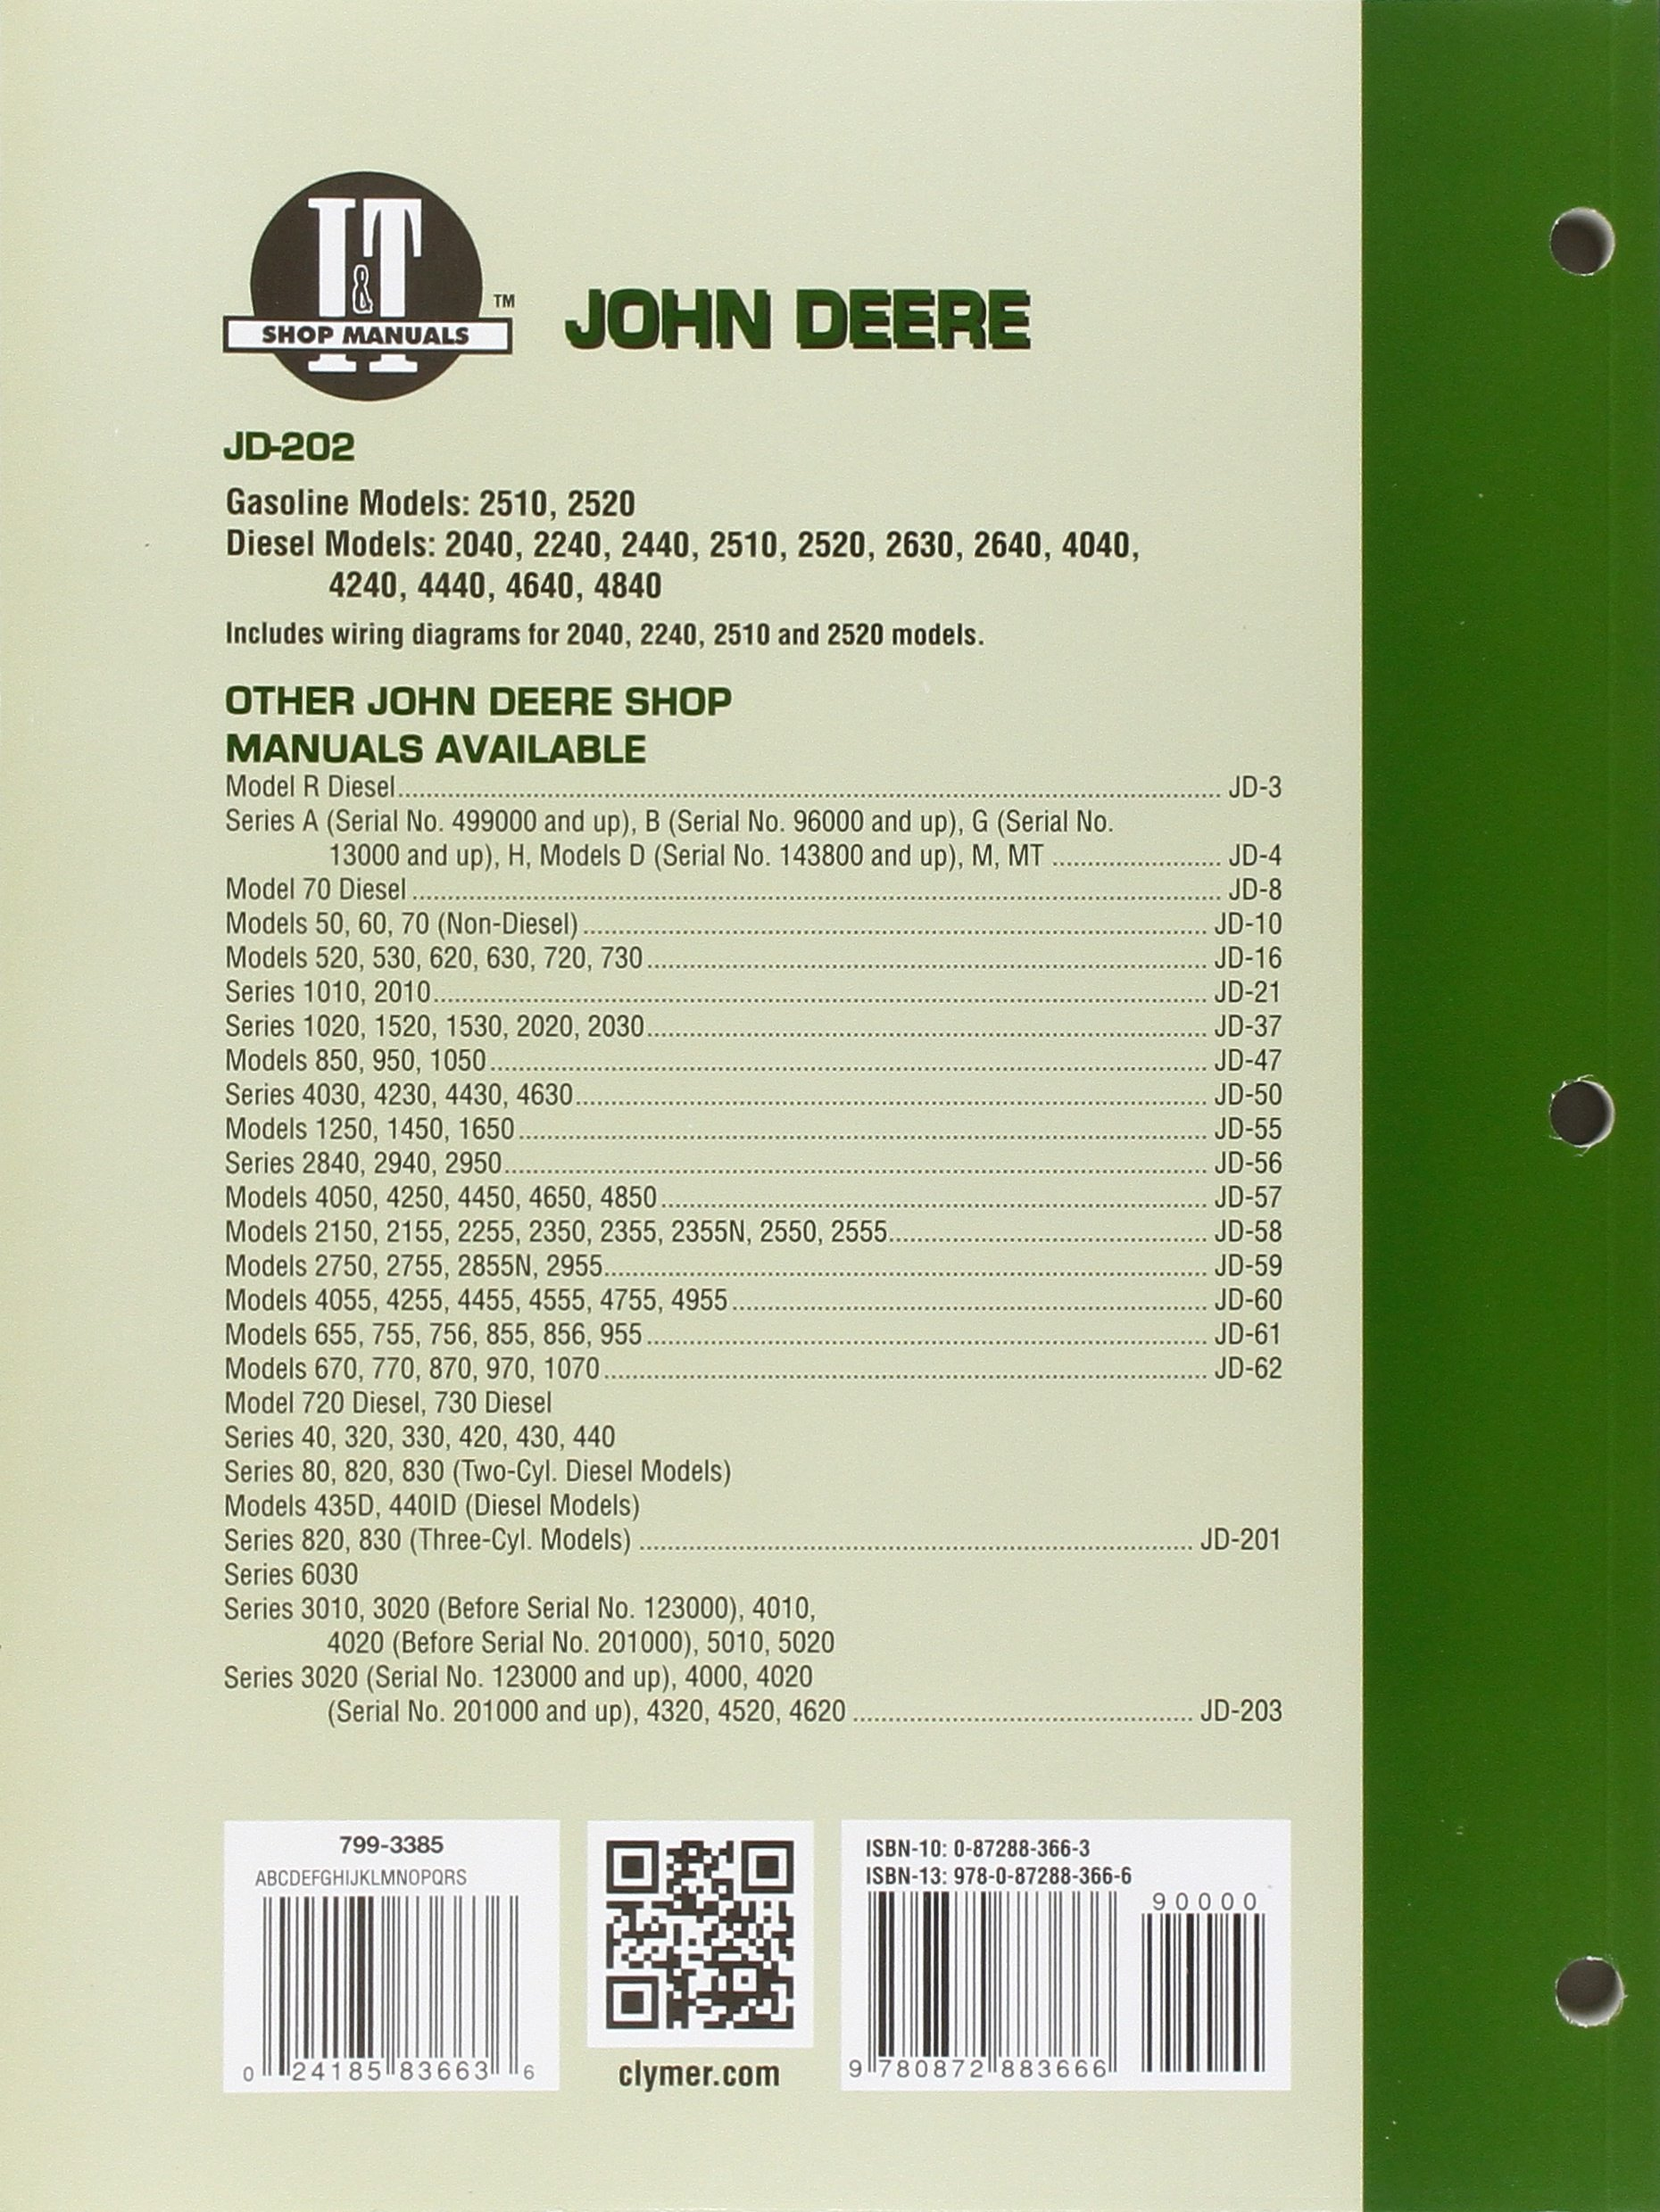 John Deere Shop Manual Jd-202 Models: 2510, 2520, 2040, 2240 ... on john deere 2440 wiring diagram, john deere 3010 wiring diagram, john deere 2940 wiring diagram, john deere 4010 wiring diagram, john deere 830 wiring diagram, john deere 2520 wiring diagram, john deere 4640 wiring diagram, john deere 850 wiring diagram, john deere 4440 wiring diagram, john deere 1020 wiring diagram, john deere 4040 wiring diagram, john deere 720 wiring diagram, john deere 2750 wiring diagram, john deere 2630 wiring diagram, john deere 2150 wiring diagram, john deere 2550 wiring diagram, john deere m wiring diagram, john deere 650 wiring diagram, john deere 3020 wiring diagram, john deere 70 wiring diagram,